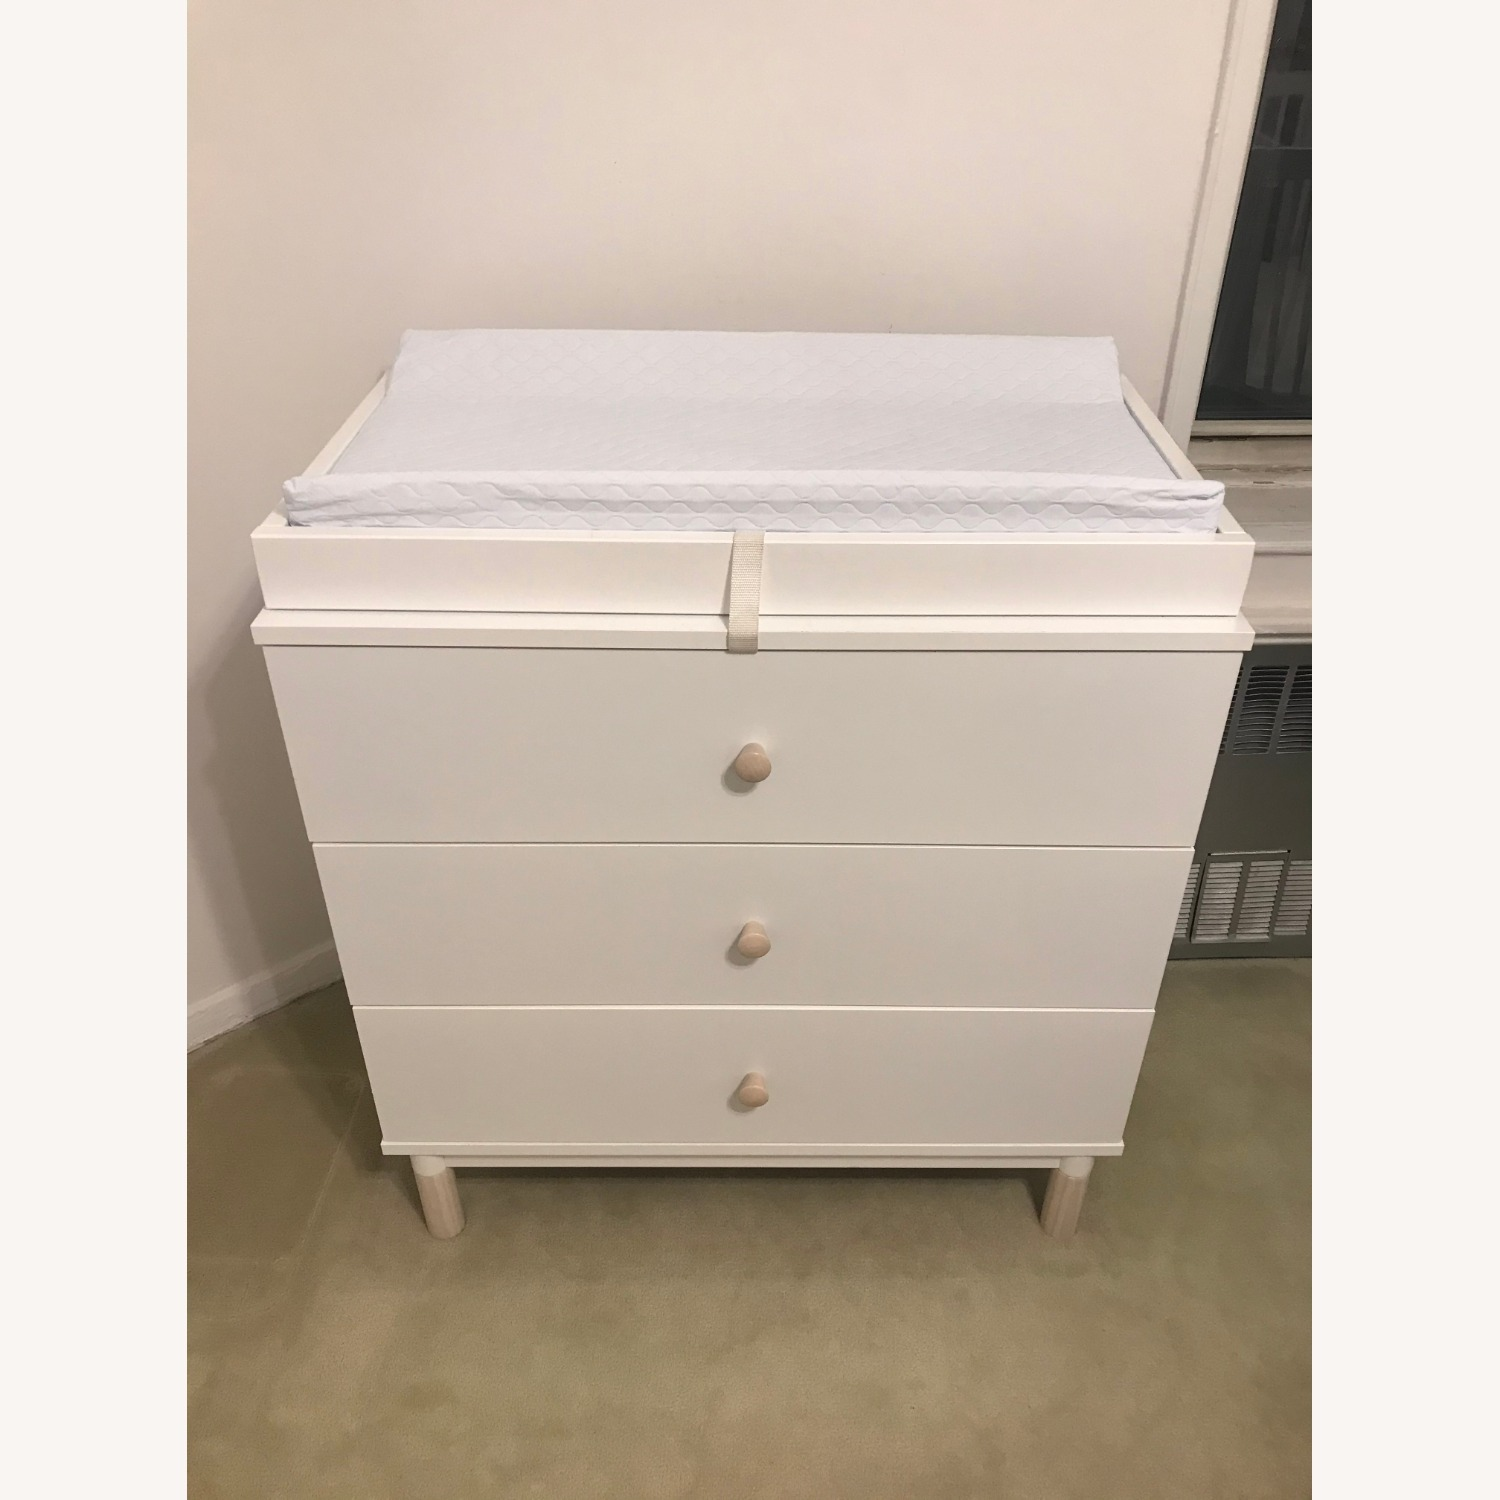 Babyletto Gelato Changing Table Dresser - image-0